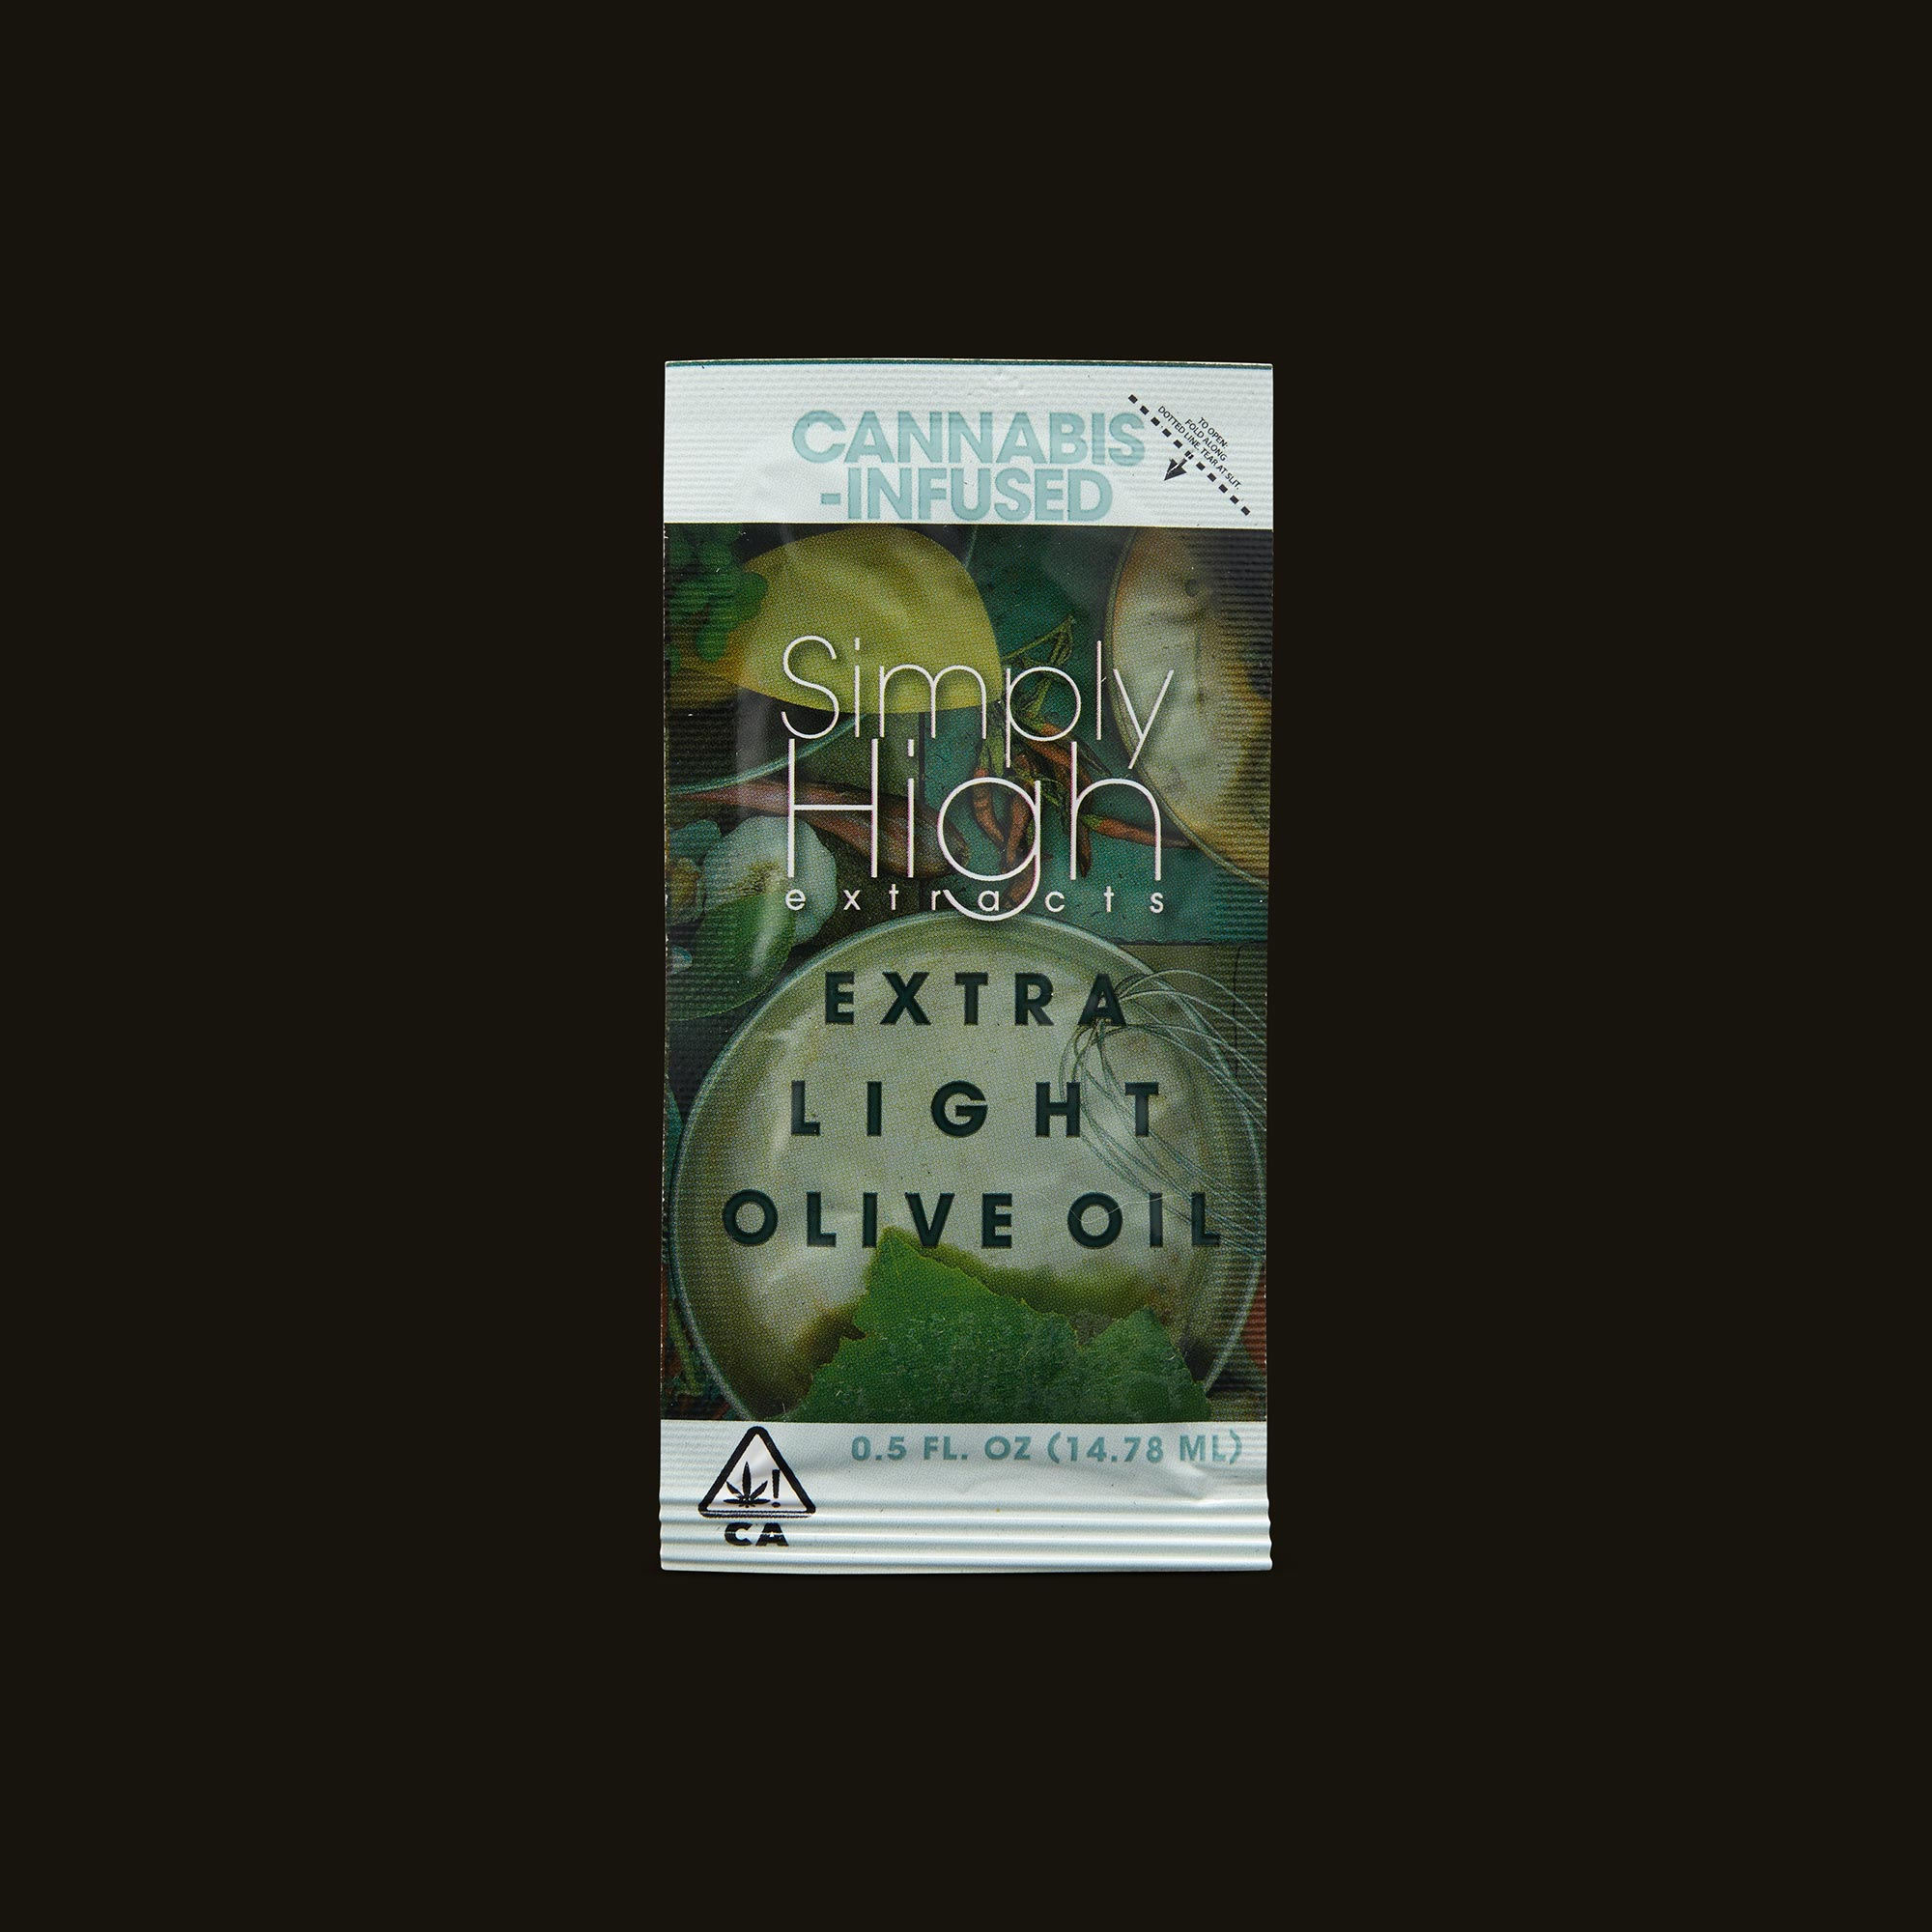 Simply High Extracts Extra Light Olive Oil Packet